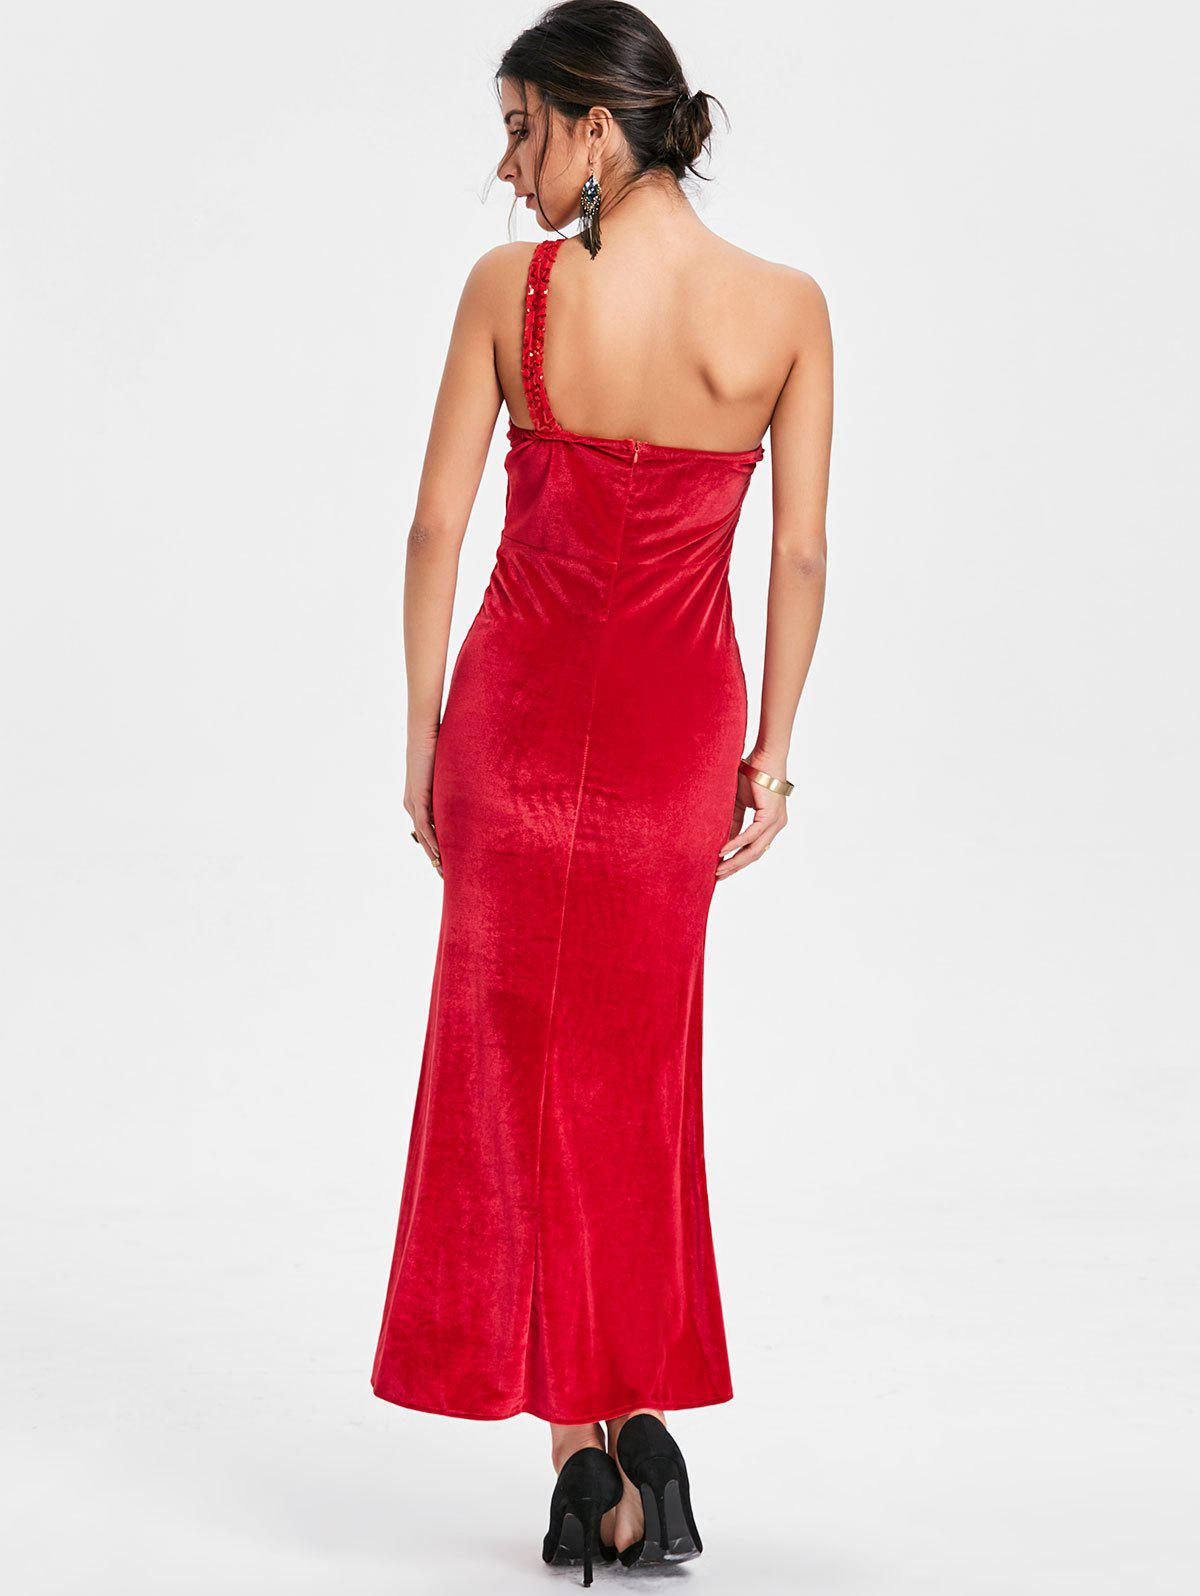 Sequin One Shoulder Maxi Party Dress - RED ONE SIZE